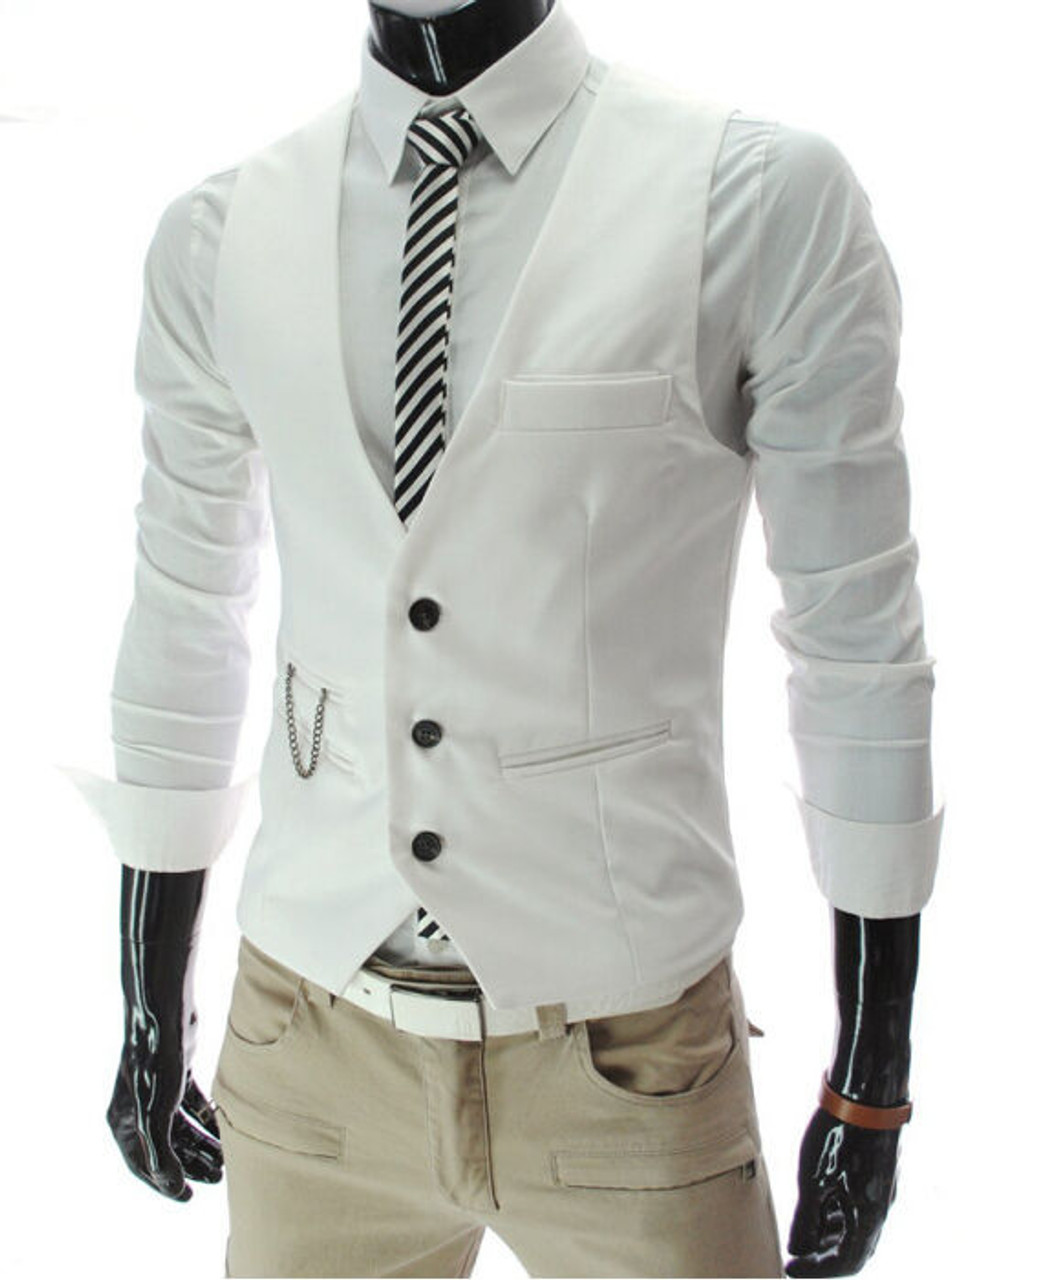 Plus Size Men/'s Formal Business Slim Fit Dress Vest Suit Tuxedo Waistcoat Tops